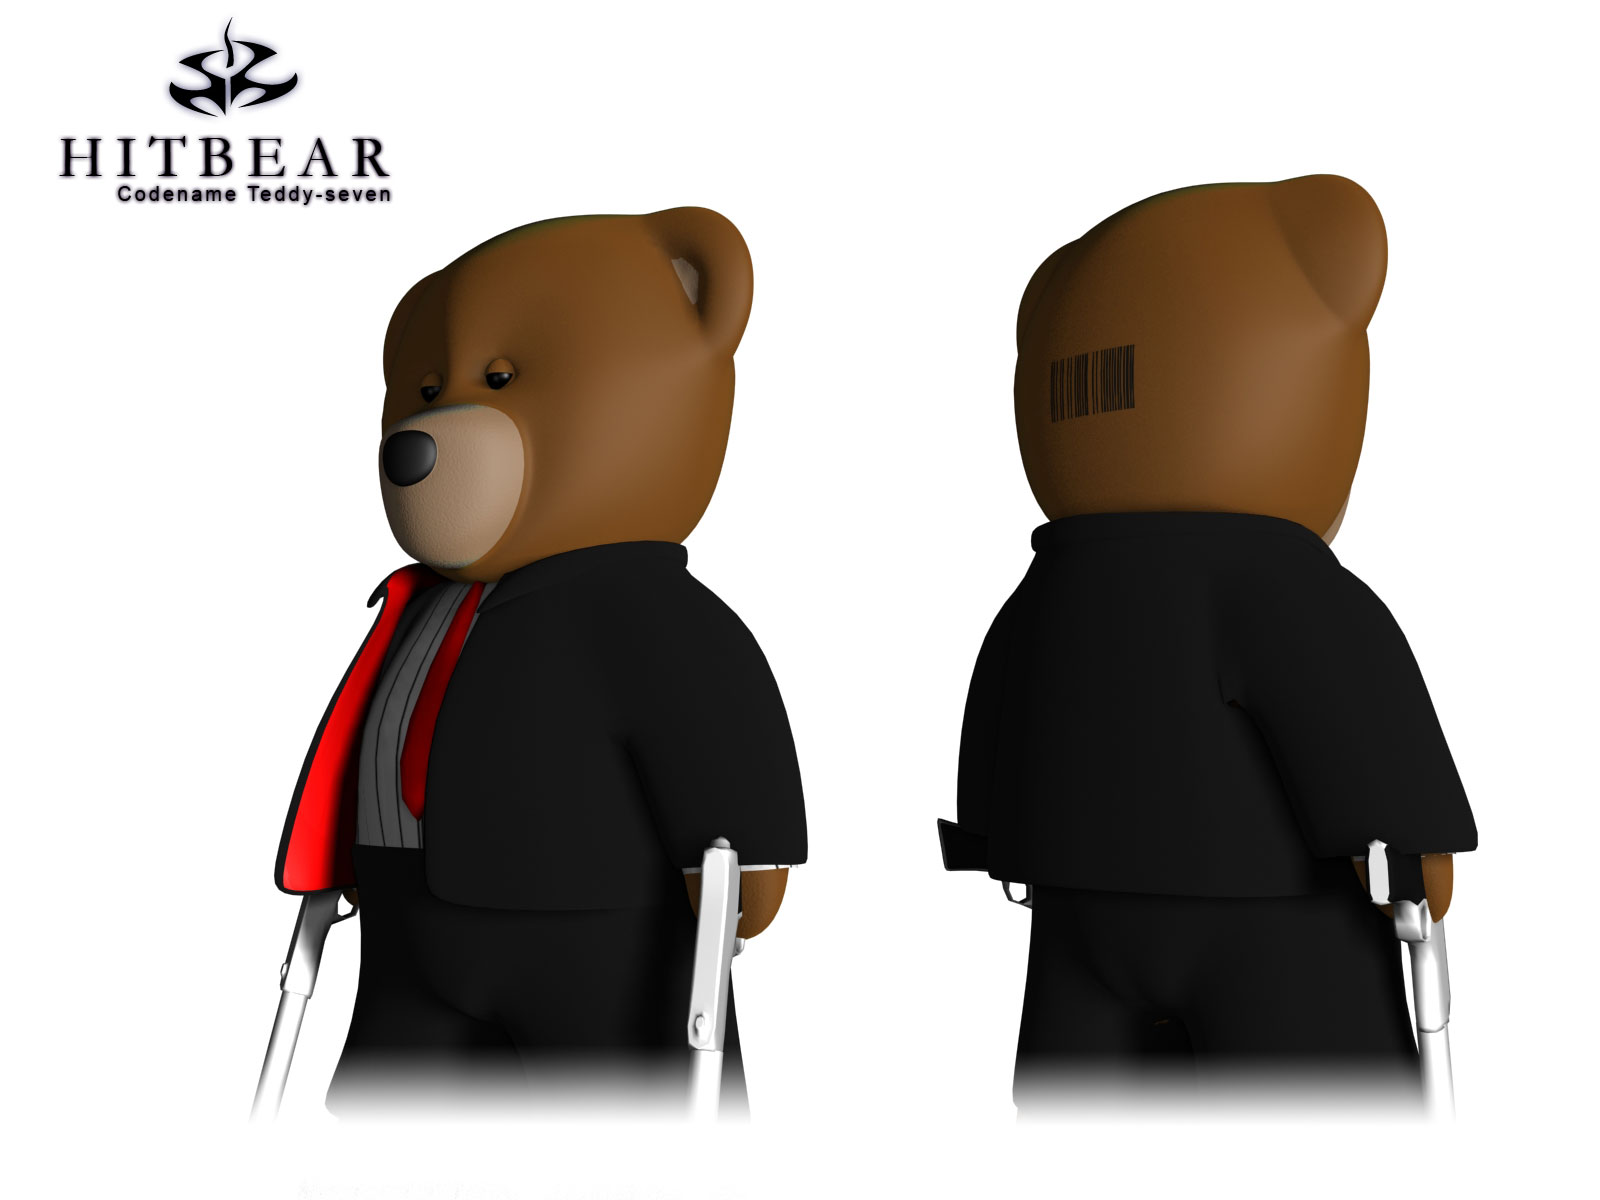 "Another pose of the Teddy Bear dressed and posed like hitman, from the games with the same name. In the top left corner it says ""Hitbear, Codename Teddy-seven"""